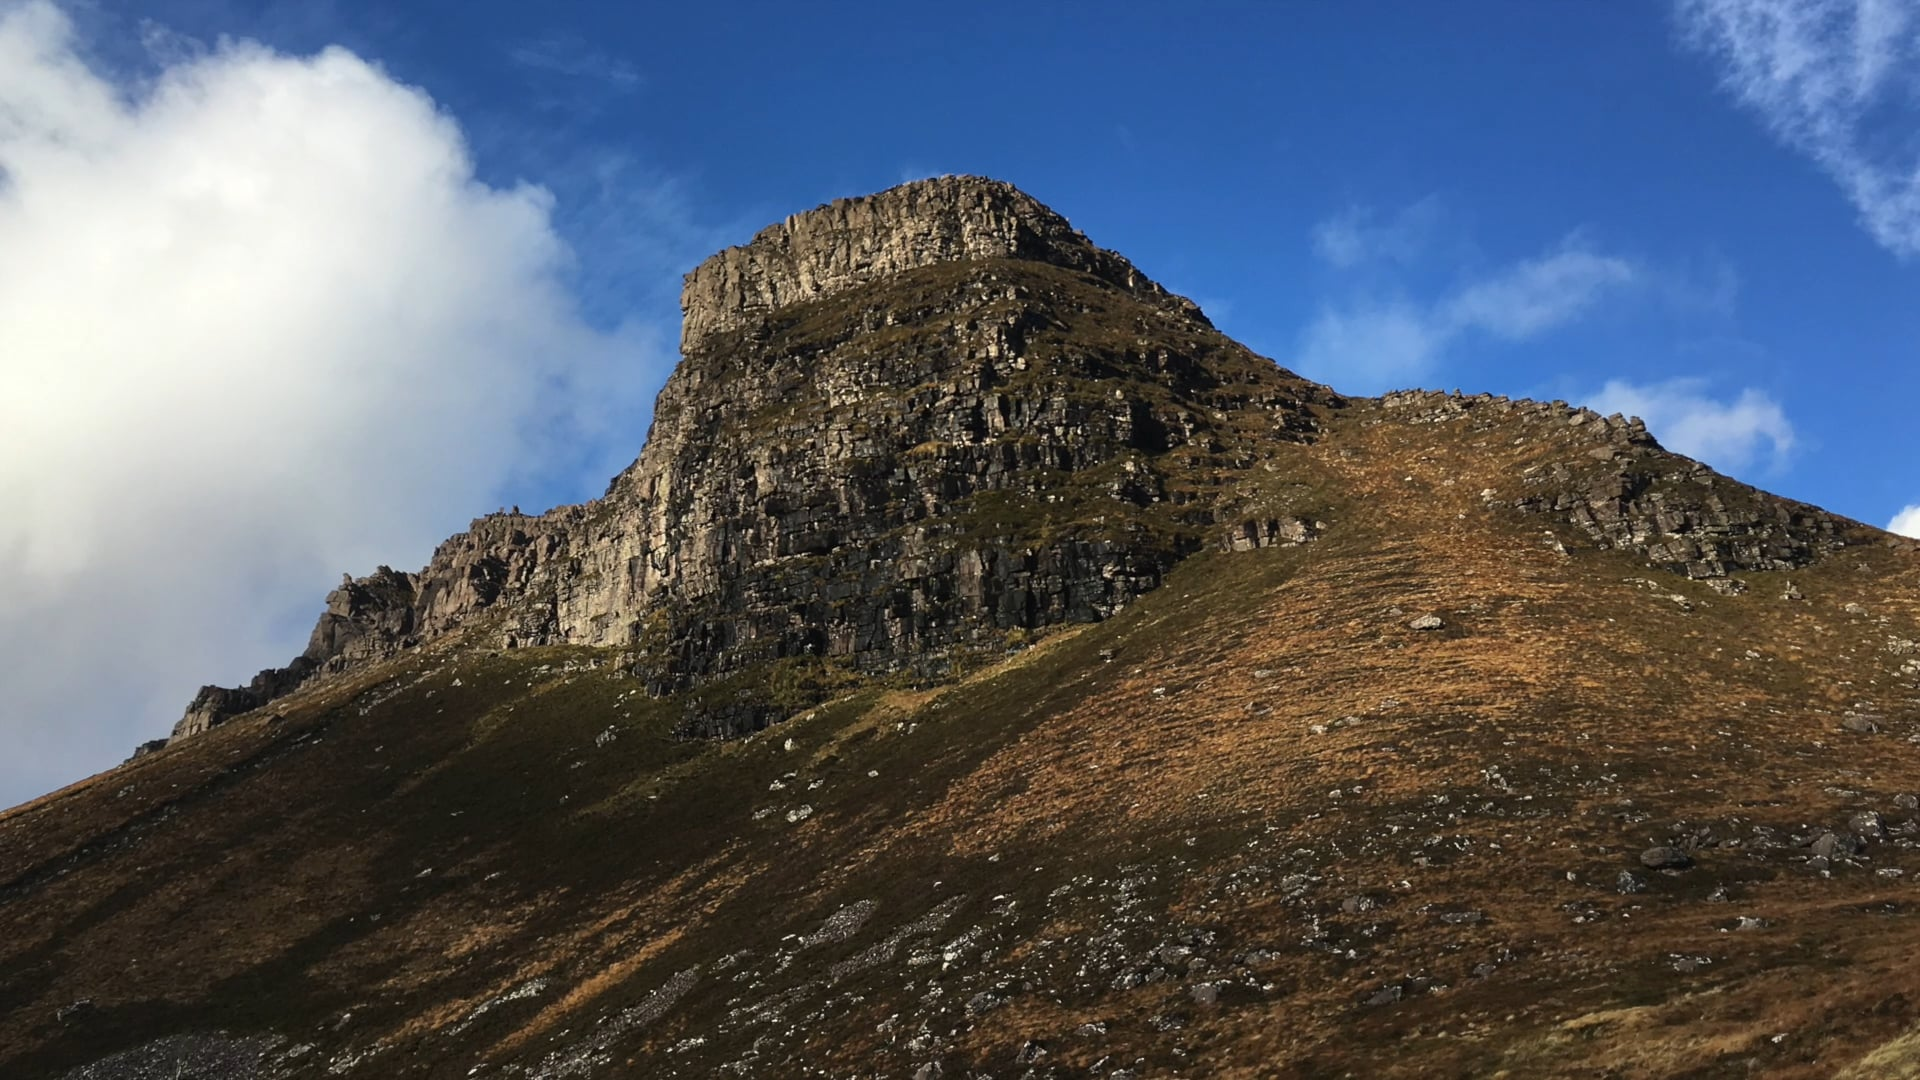 Stac Pollaidh Scotland: the ascent by mountain men